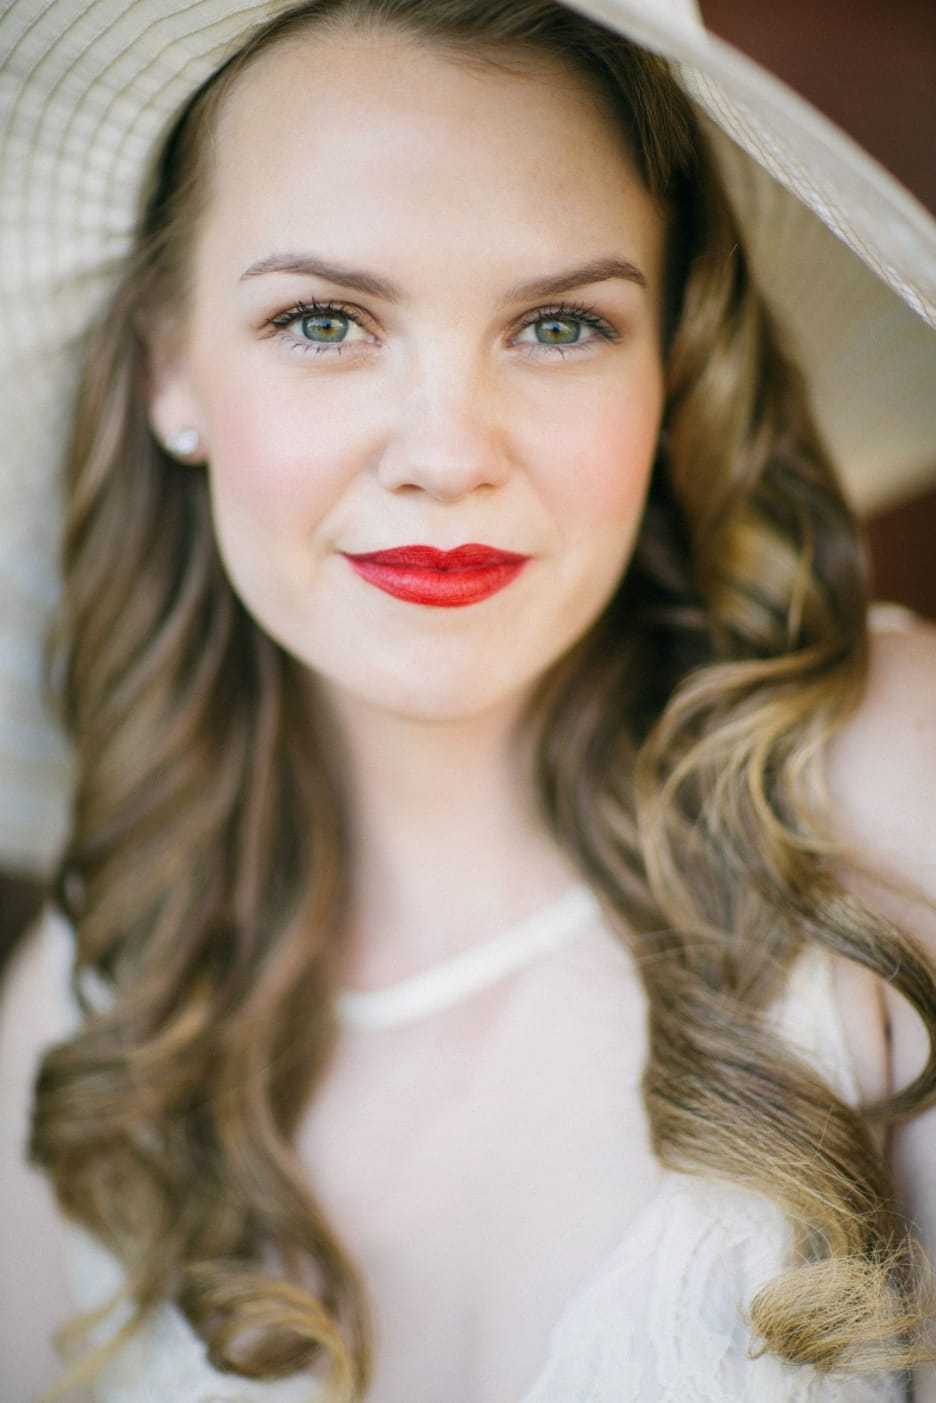 Abbie Cobb Abbie Cobb new images